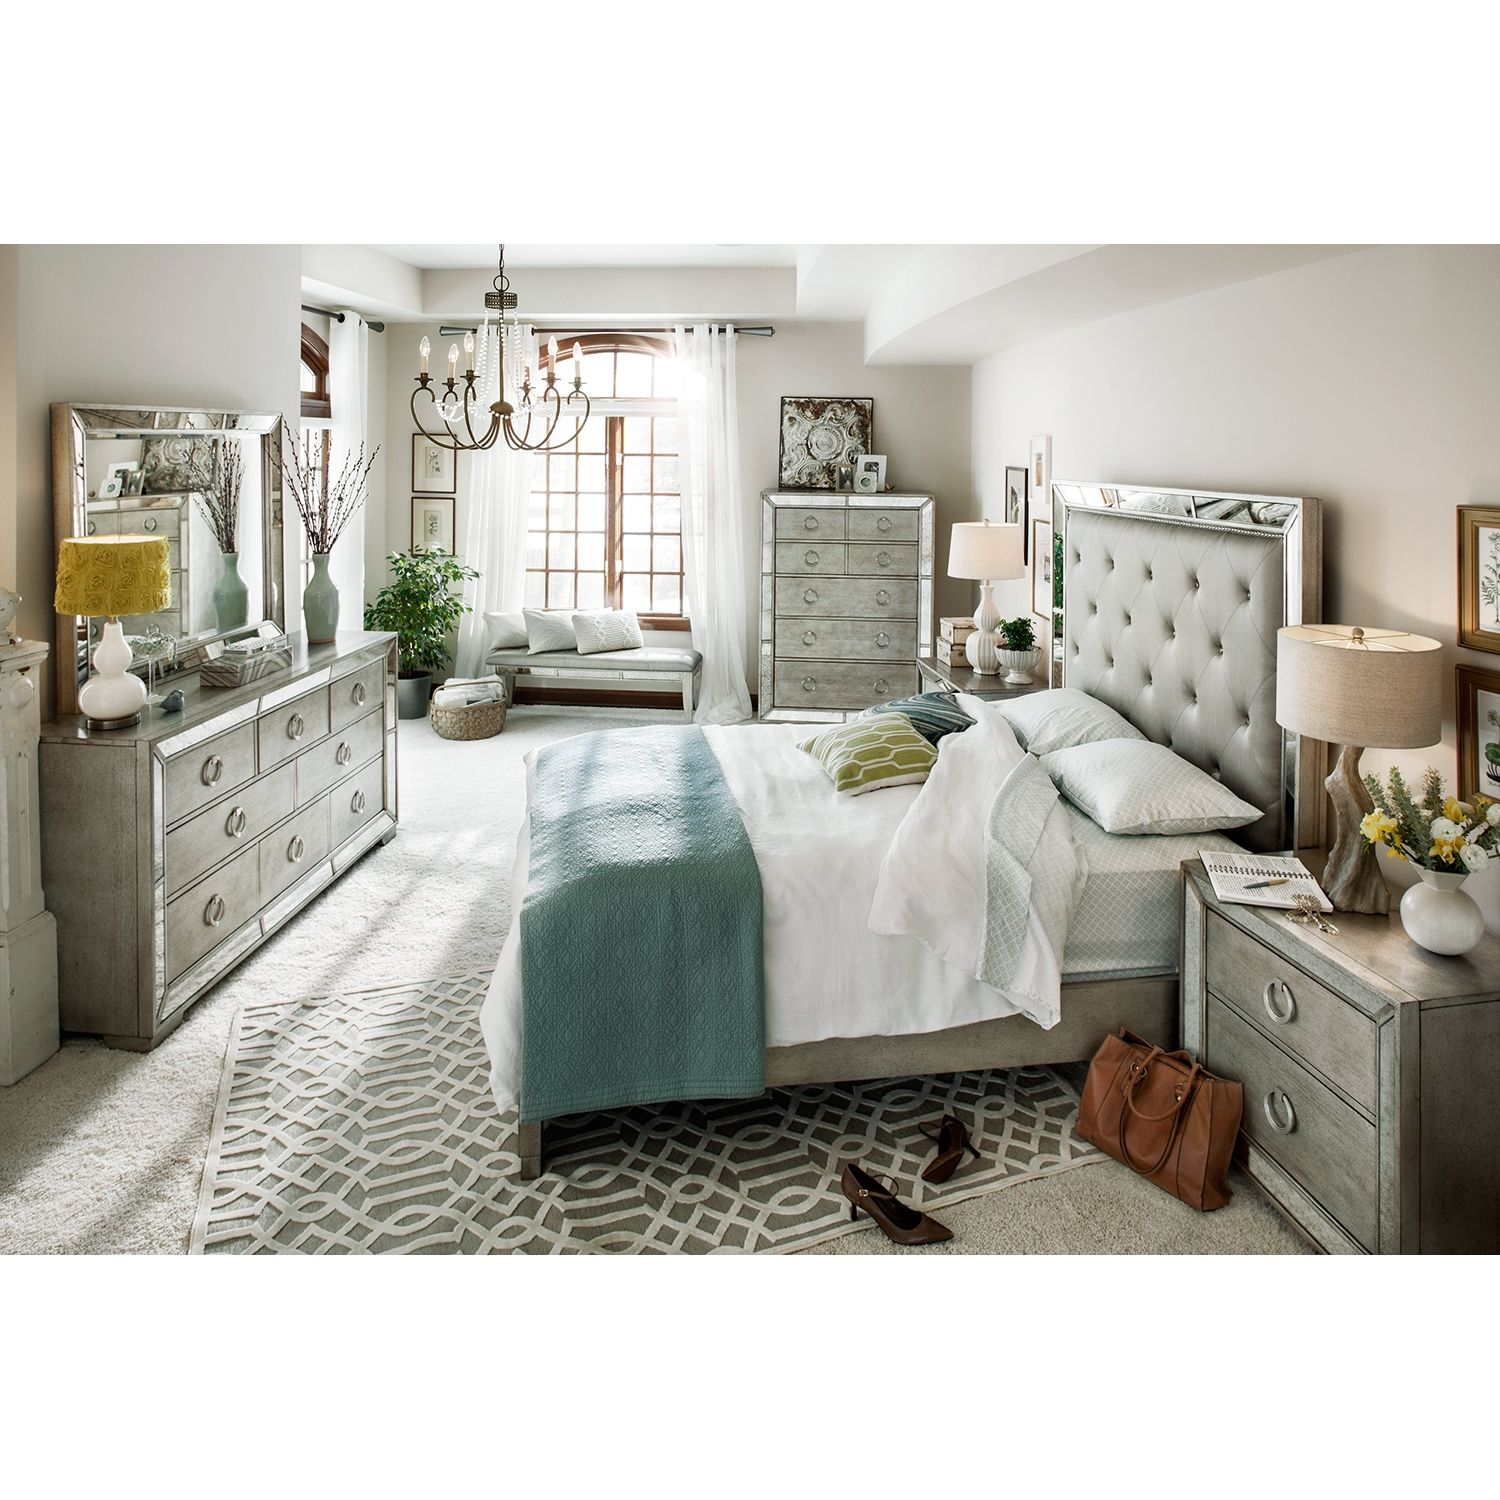 Queen Bedroom Furniture Sets You Deserve The Best And This Is The Best Angelina Queen Bed